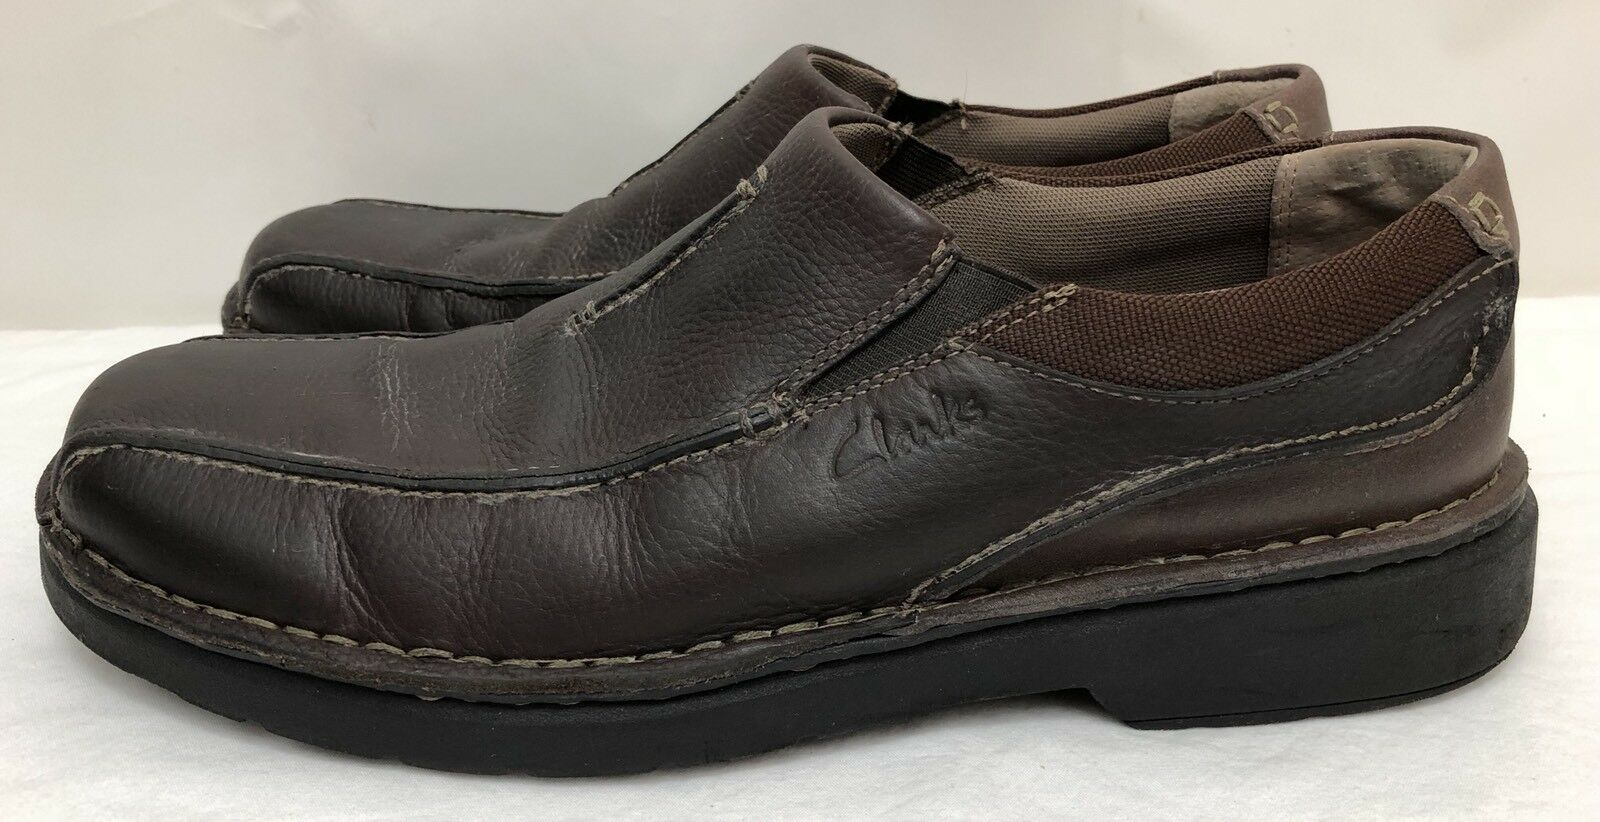 Mens CLARKS Shoes 86231 0609 Brown Leather Loafers Shoes CLARKS SIZE 13 M 6cd86c